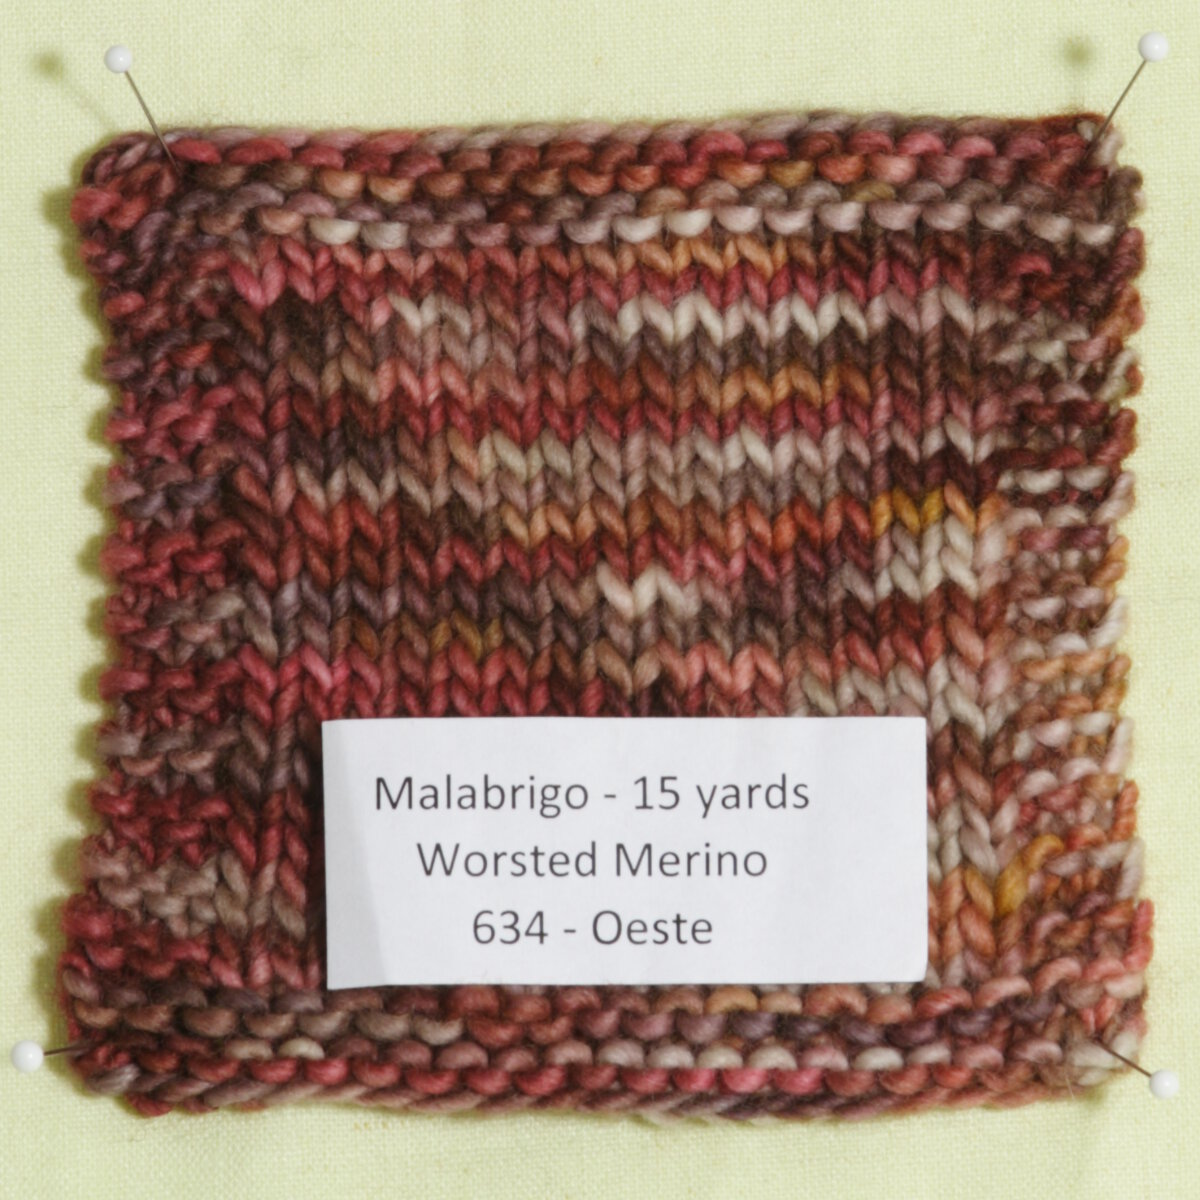 Knitting Patterns For Worsted Wool : Malabrigo Worsted Merino Samples Yarn at Jimmy Beans Wool